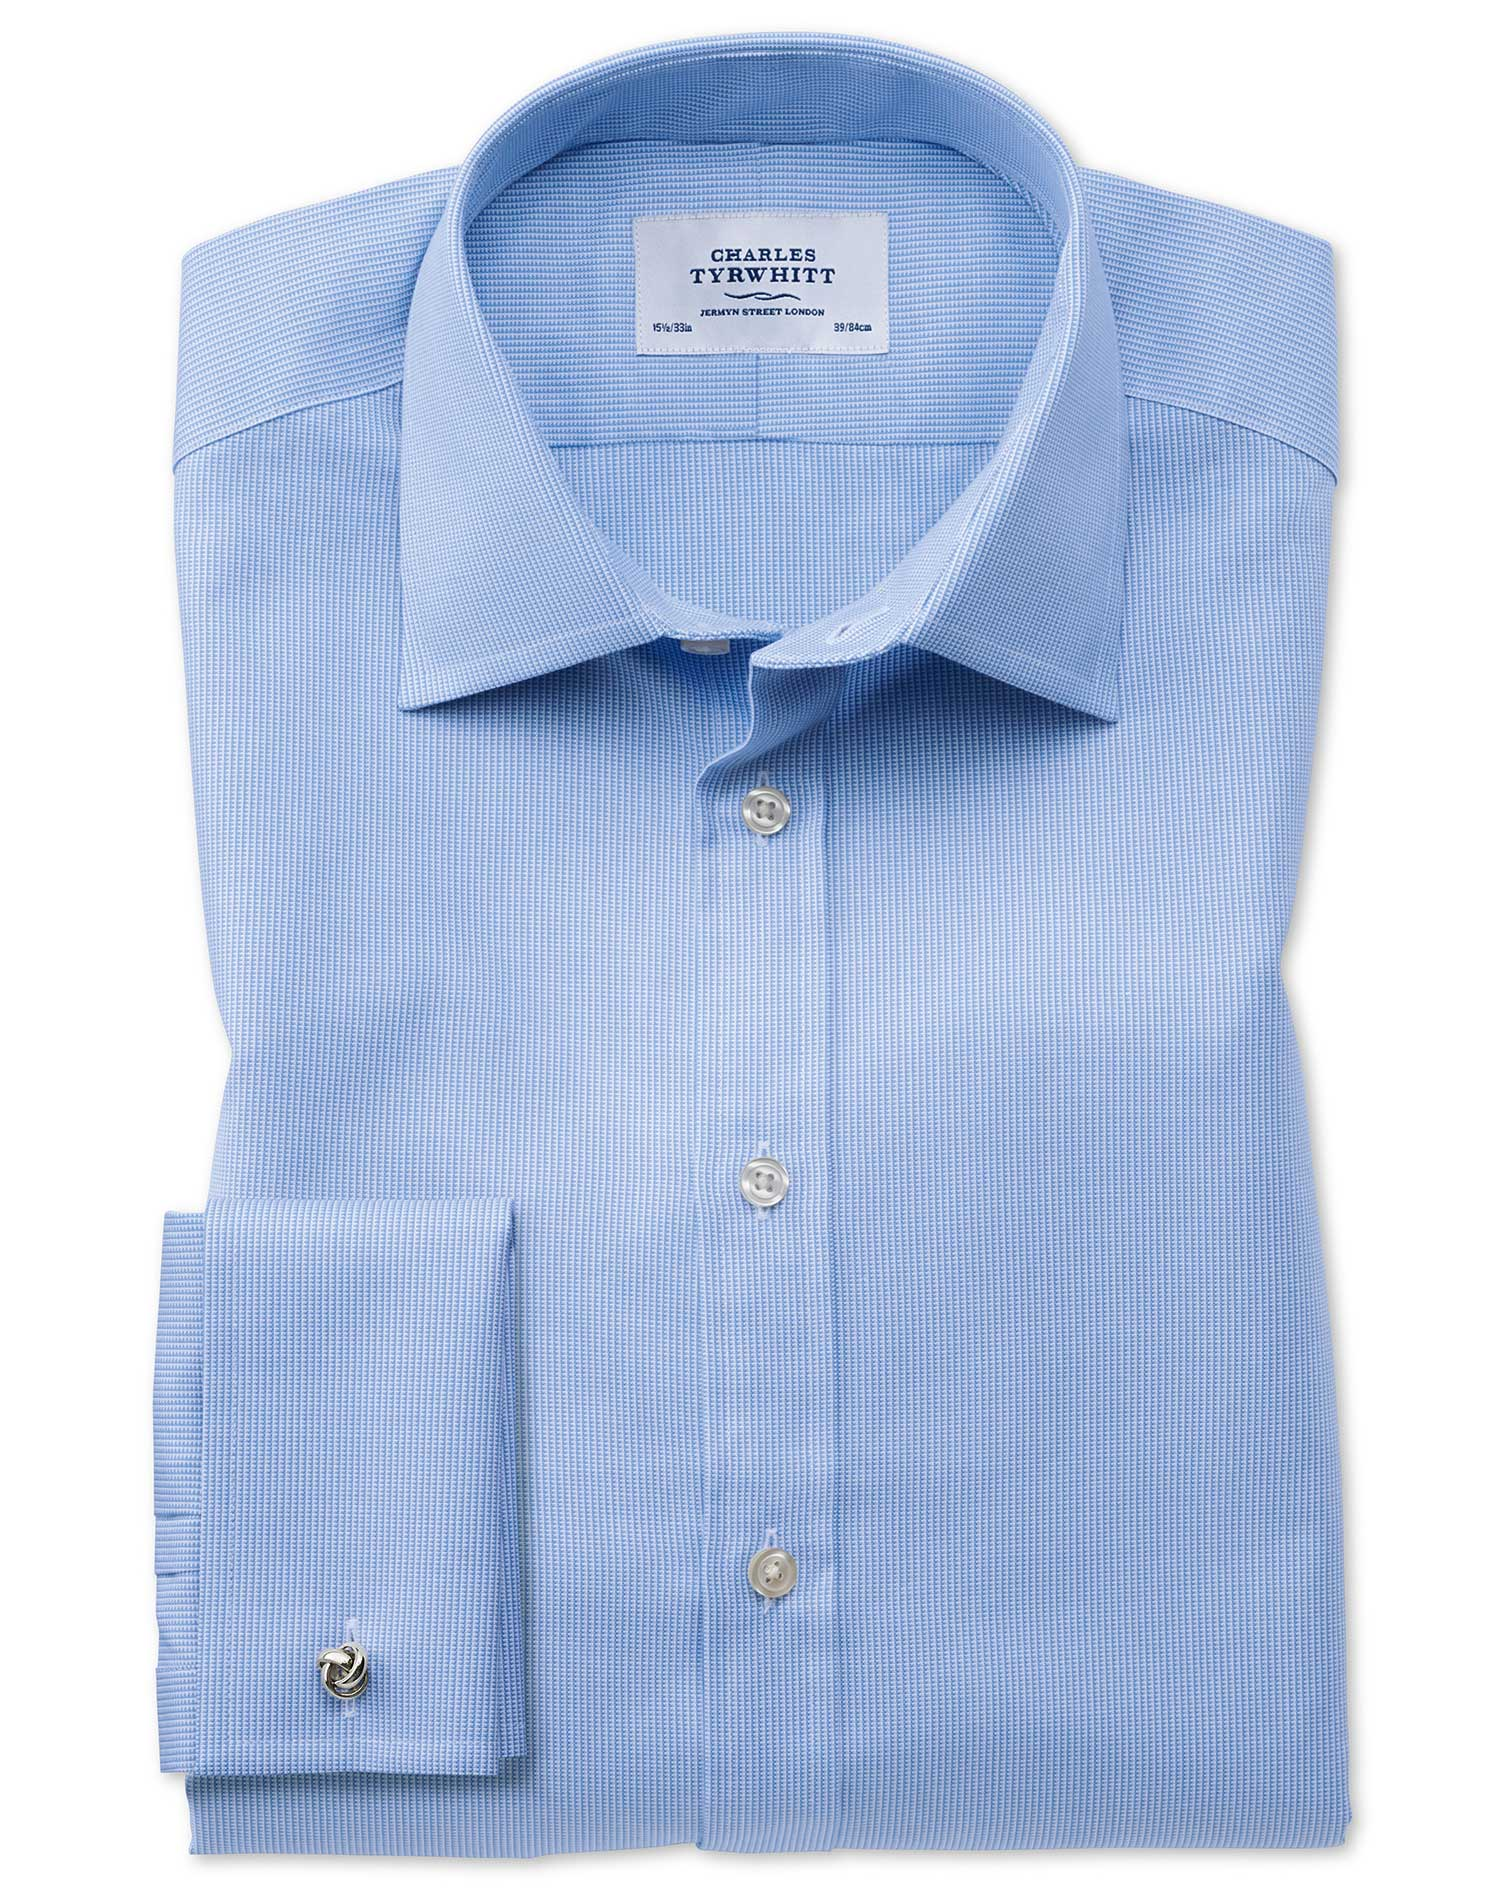 Classic Fit Oxford Sky Blue Cotton Formal Shirt Double Cuff Size 18/36 by Charles Tyrwhitt